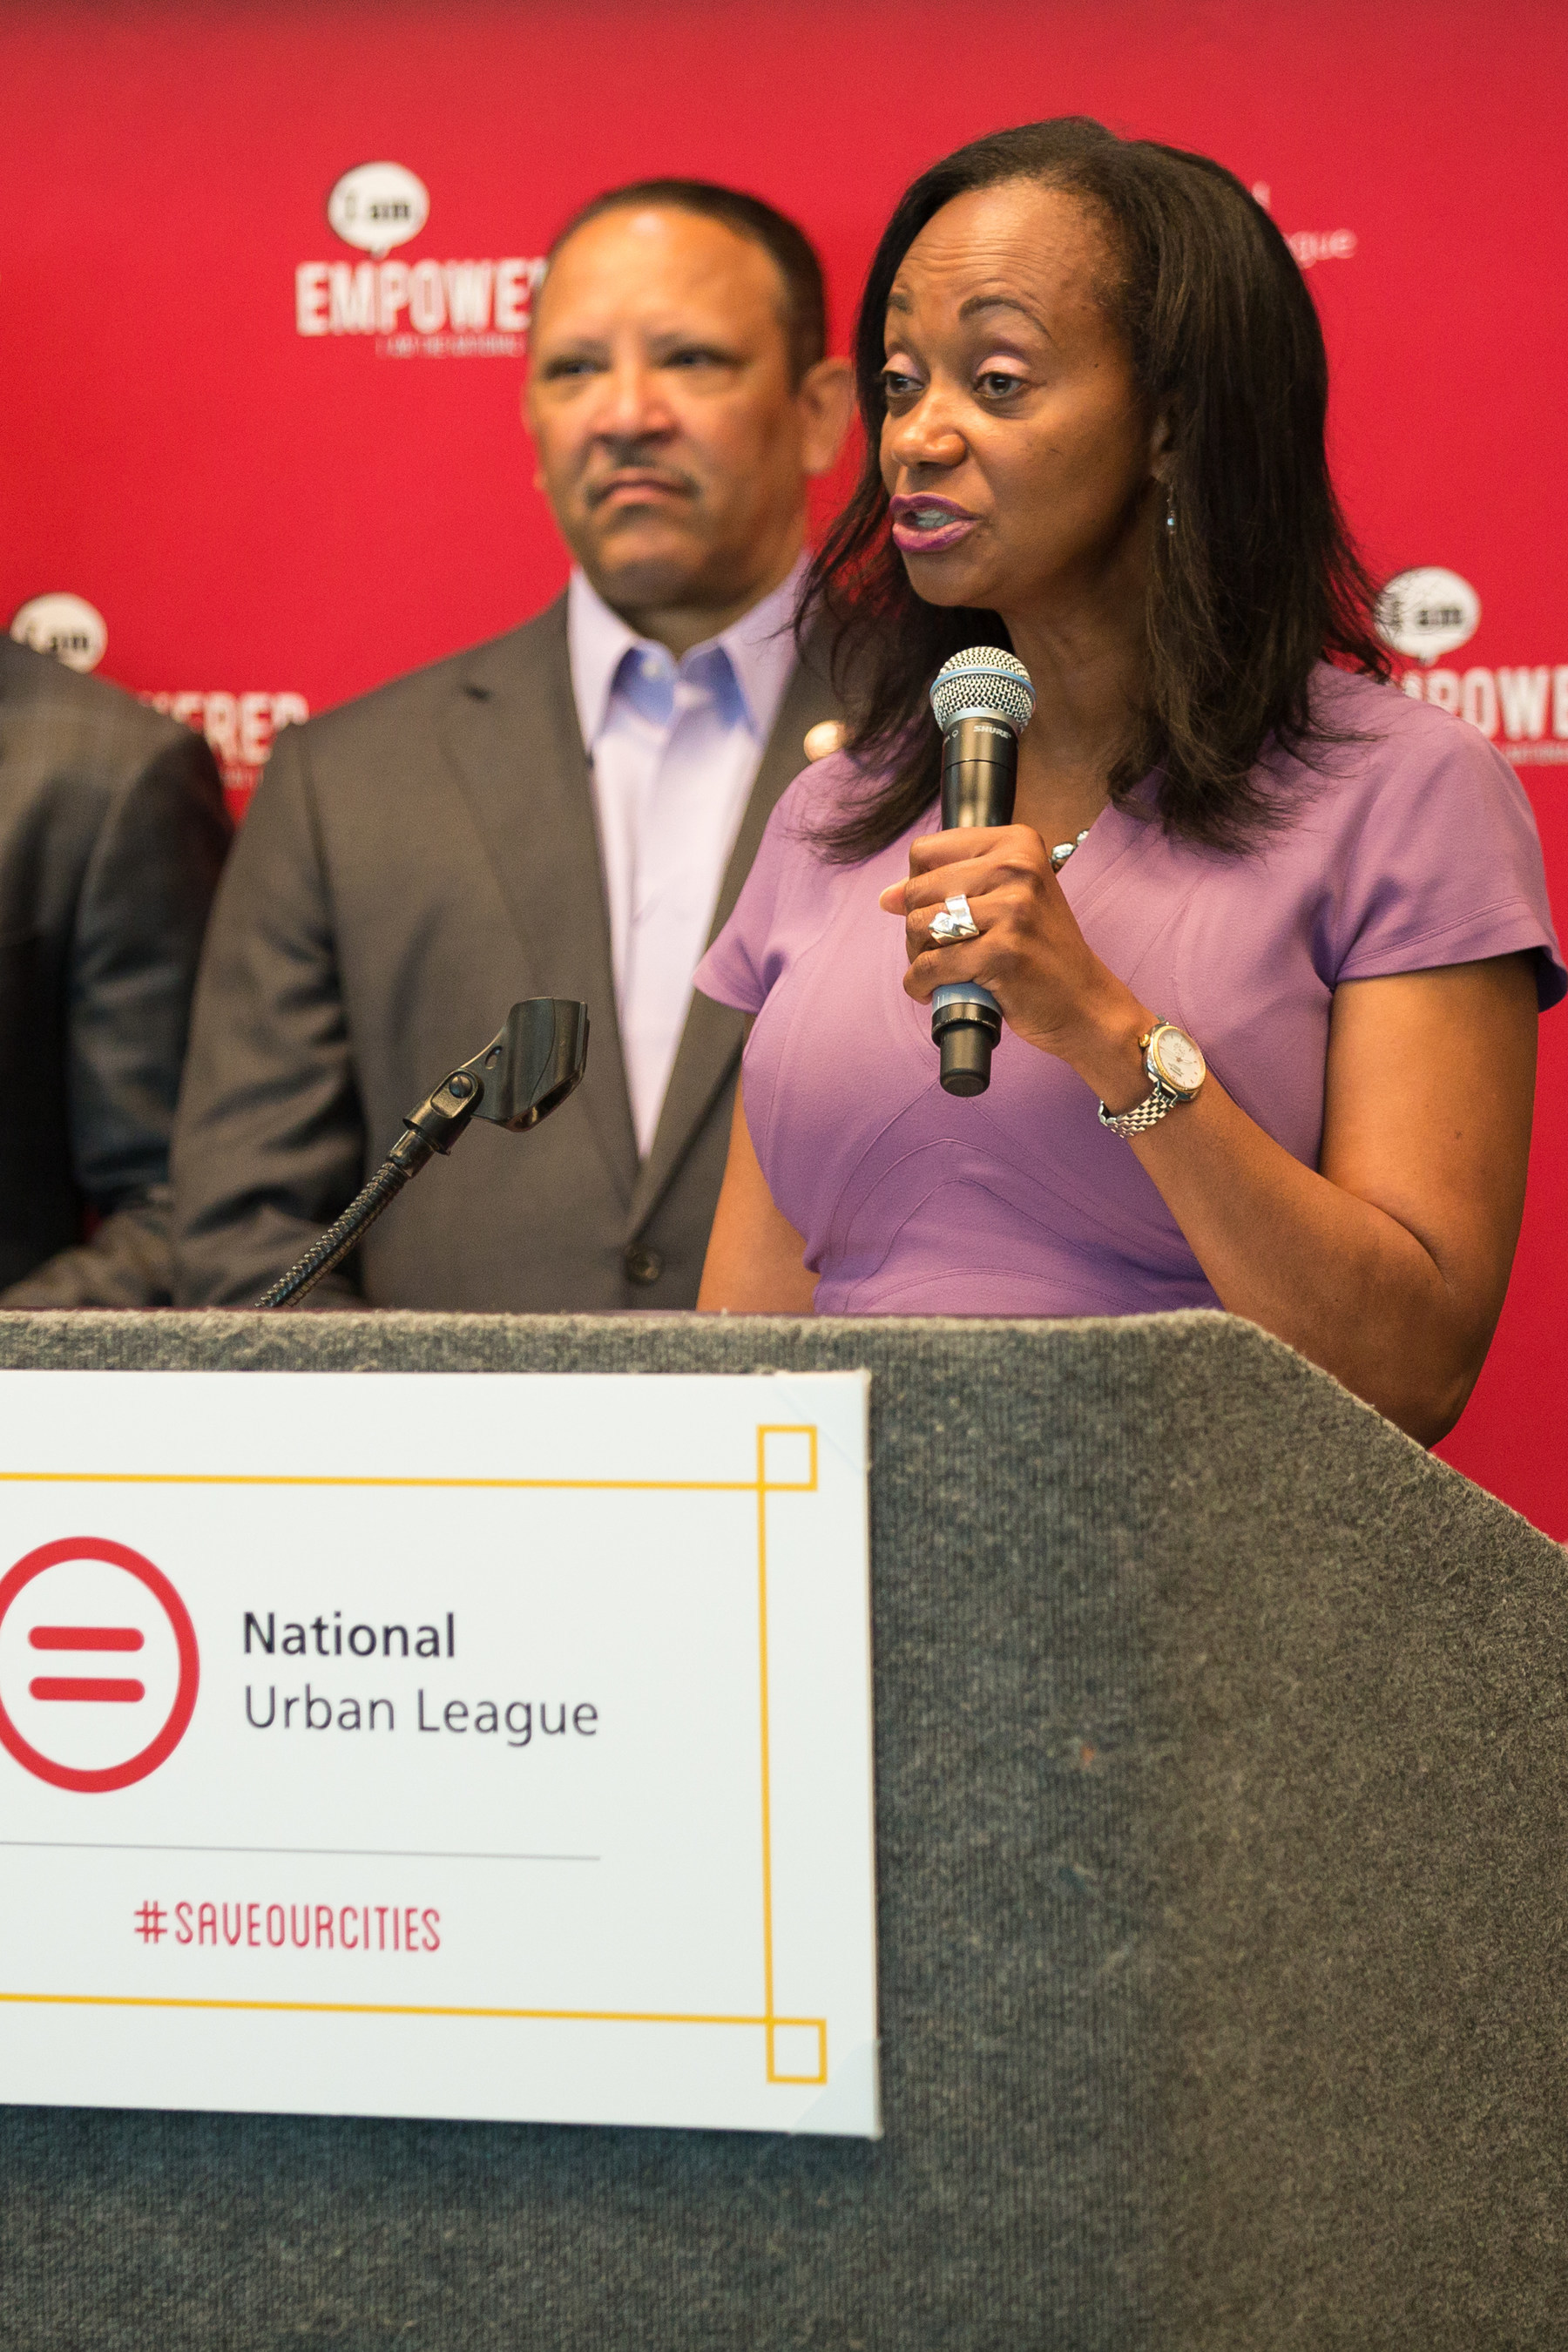 Marc Morial, President & CEO, National Urban League, looks on as Alva Mason, National Manager, African American Business Strategy Group, Toyota North America, speaks at the opening press conference today at the 2015 National Urban League conference in Ft. Lauderdale.